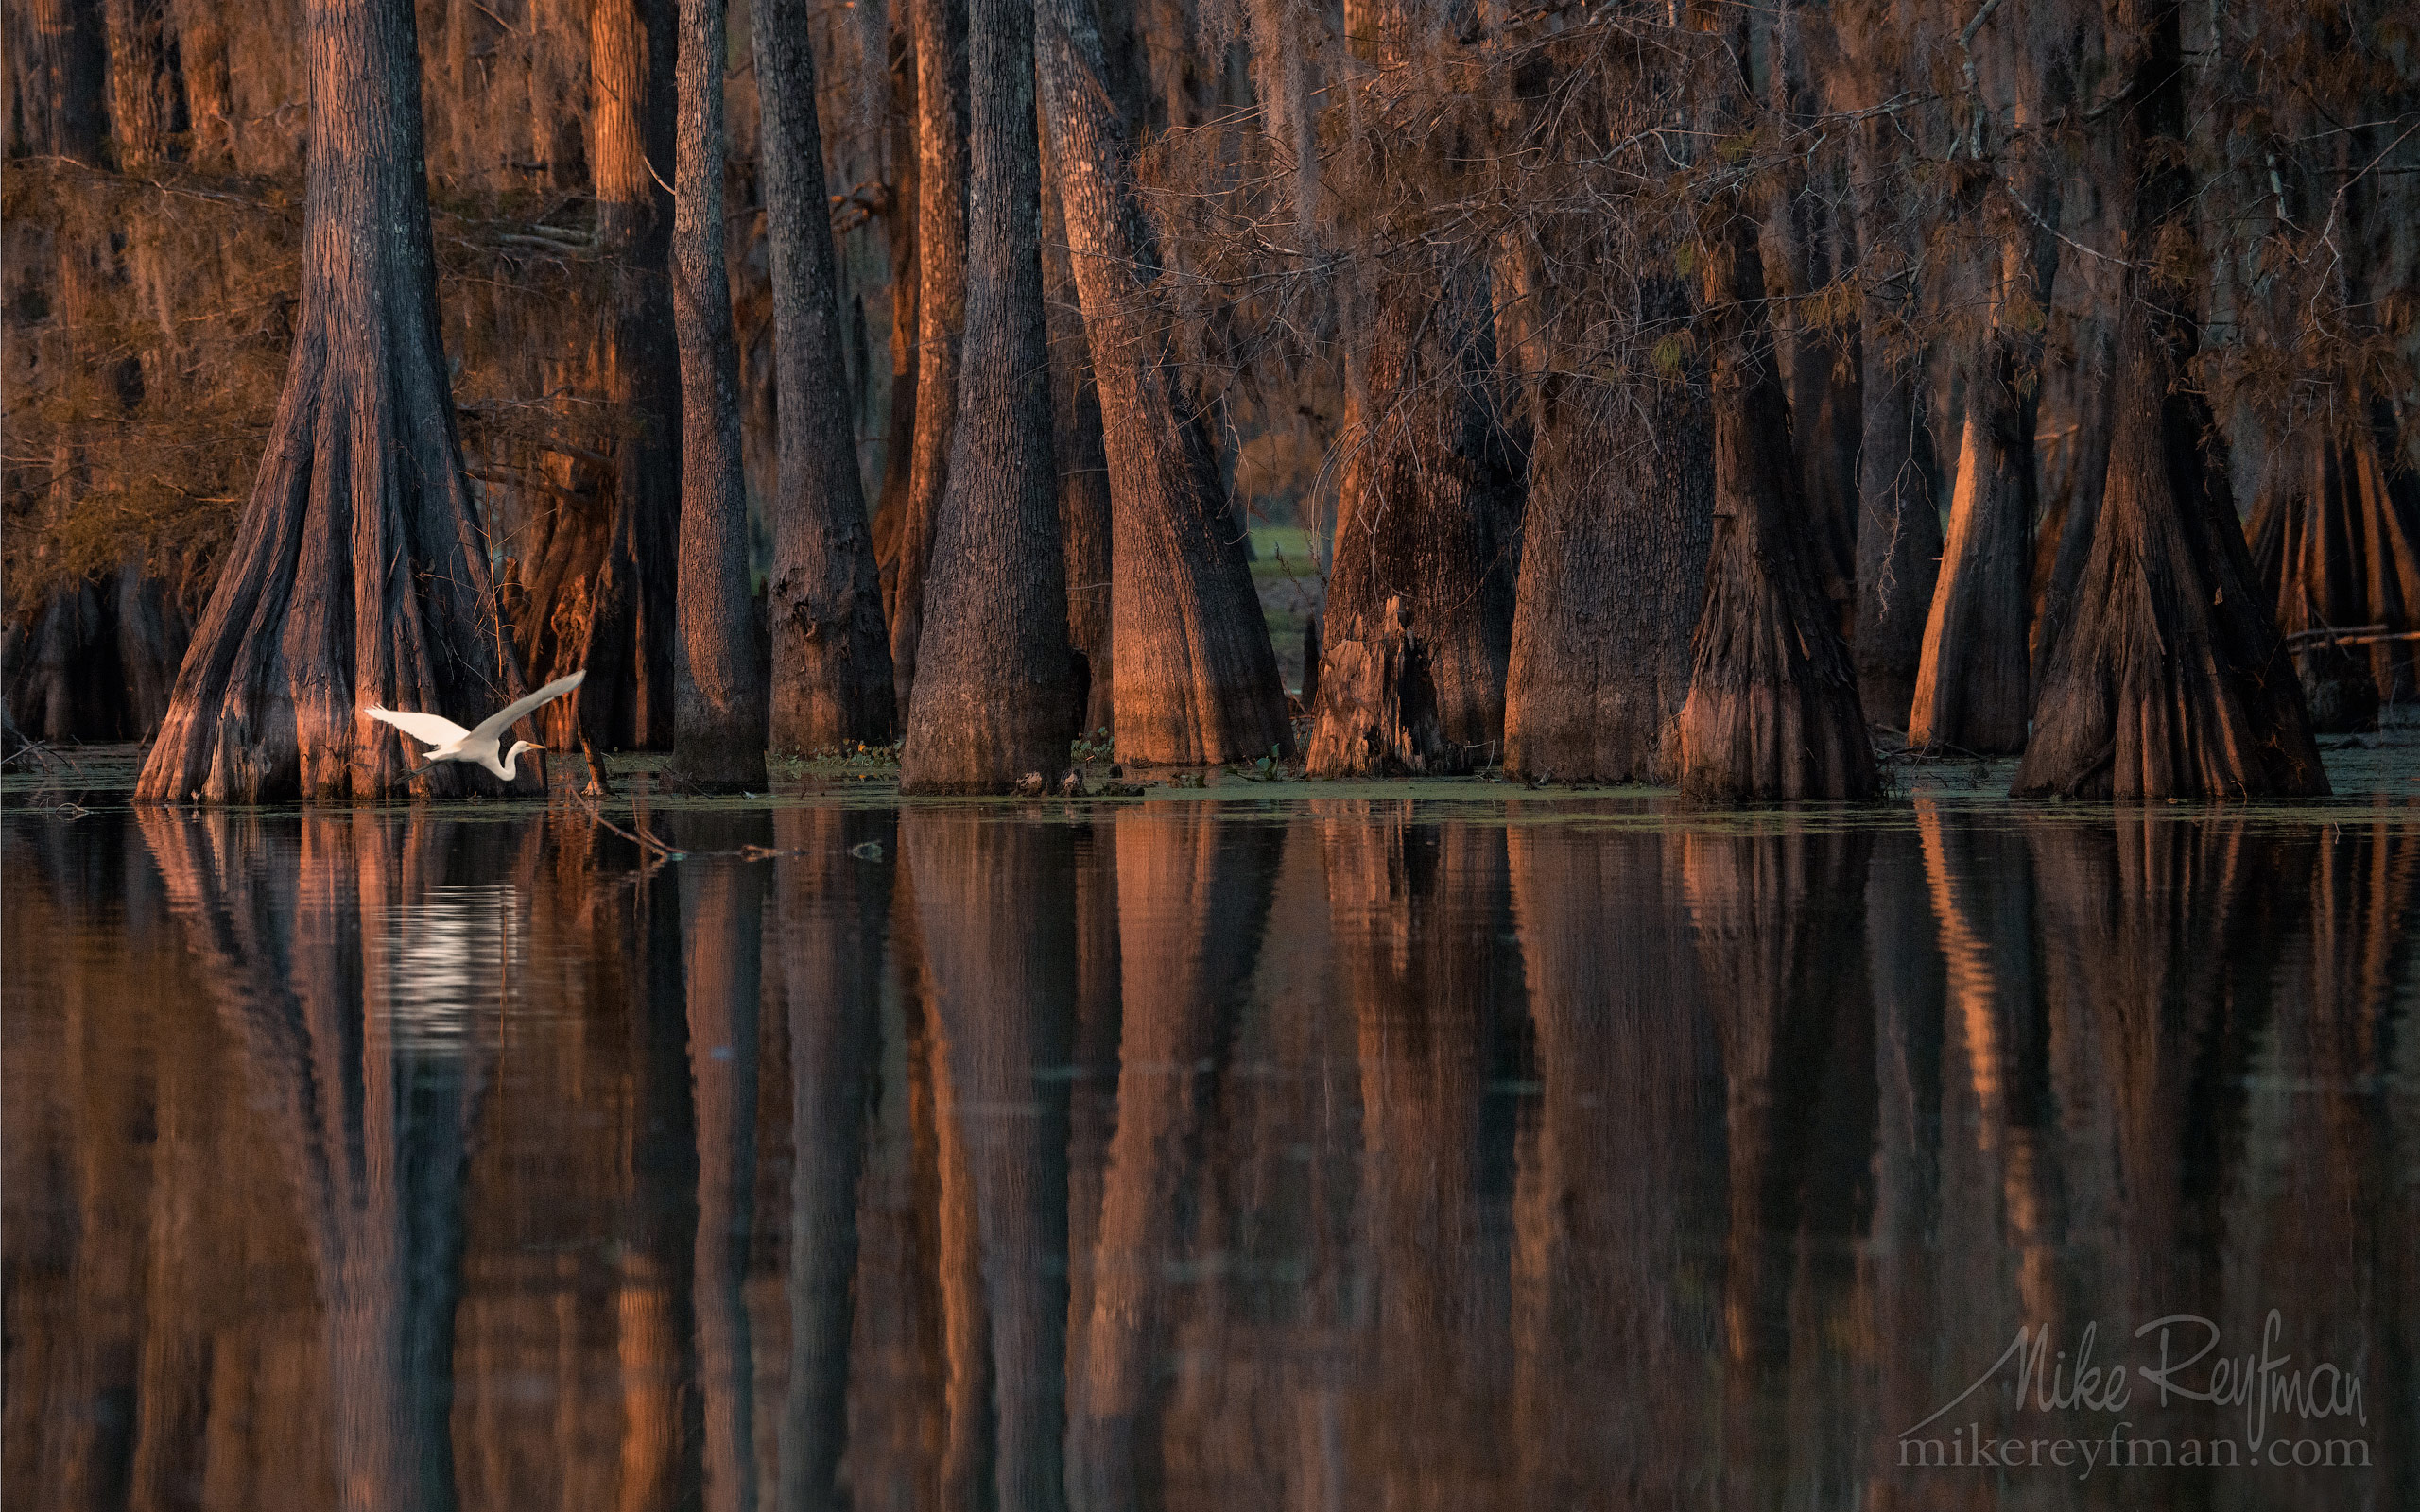 Great Egret with the buttressed trunks of Bald Cypress and Tupelo trees in the background. Lake Martin, Louisiana, US 064-LT1-50A2170.jpg - Bold Cypress and Tupelo Trees in the swamps of Atchafalaya River Basin. Caddo, Martin and Fousse Lakes. Texas/Louisiana, USA. - Mike Reyfman Photography